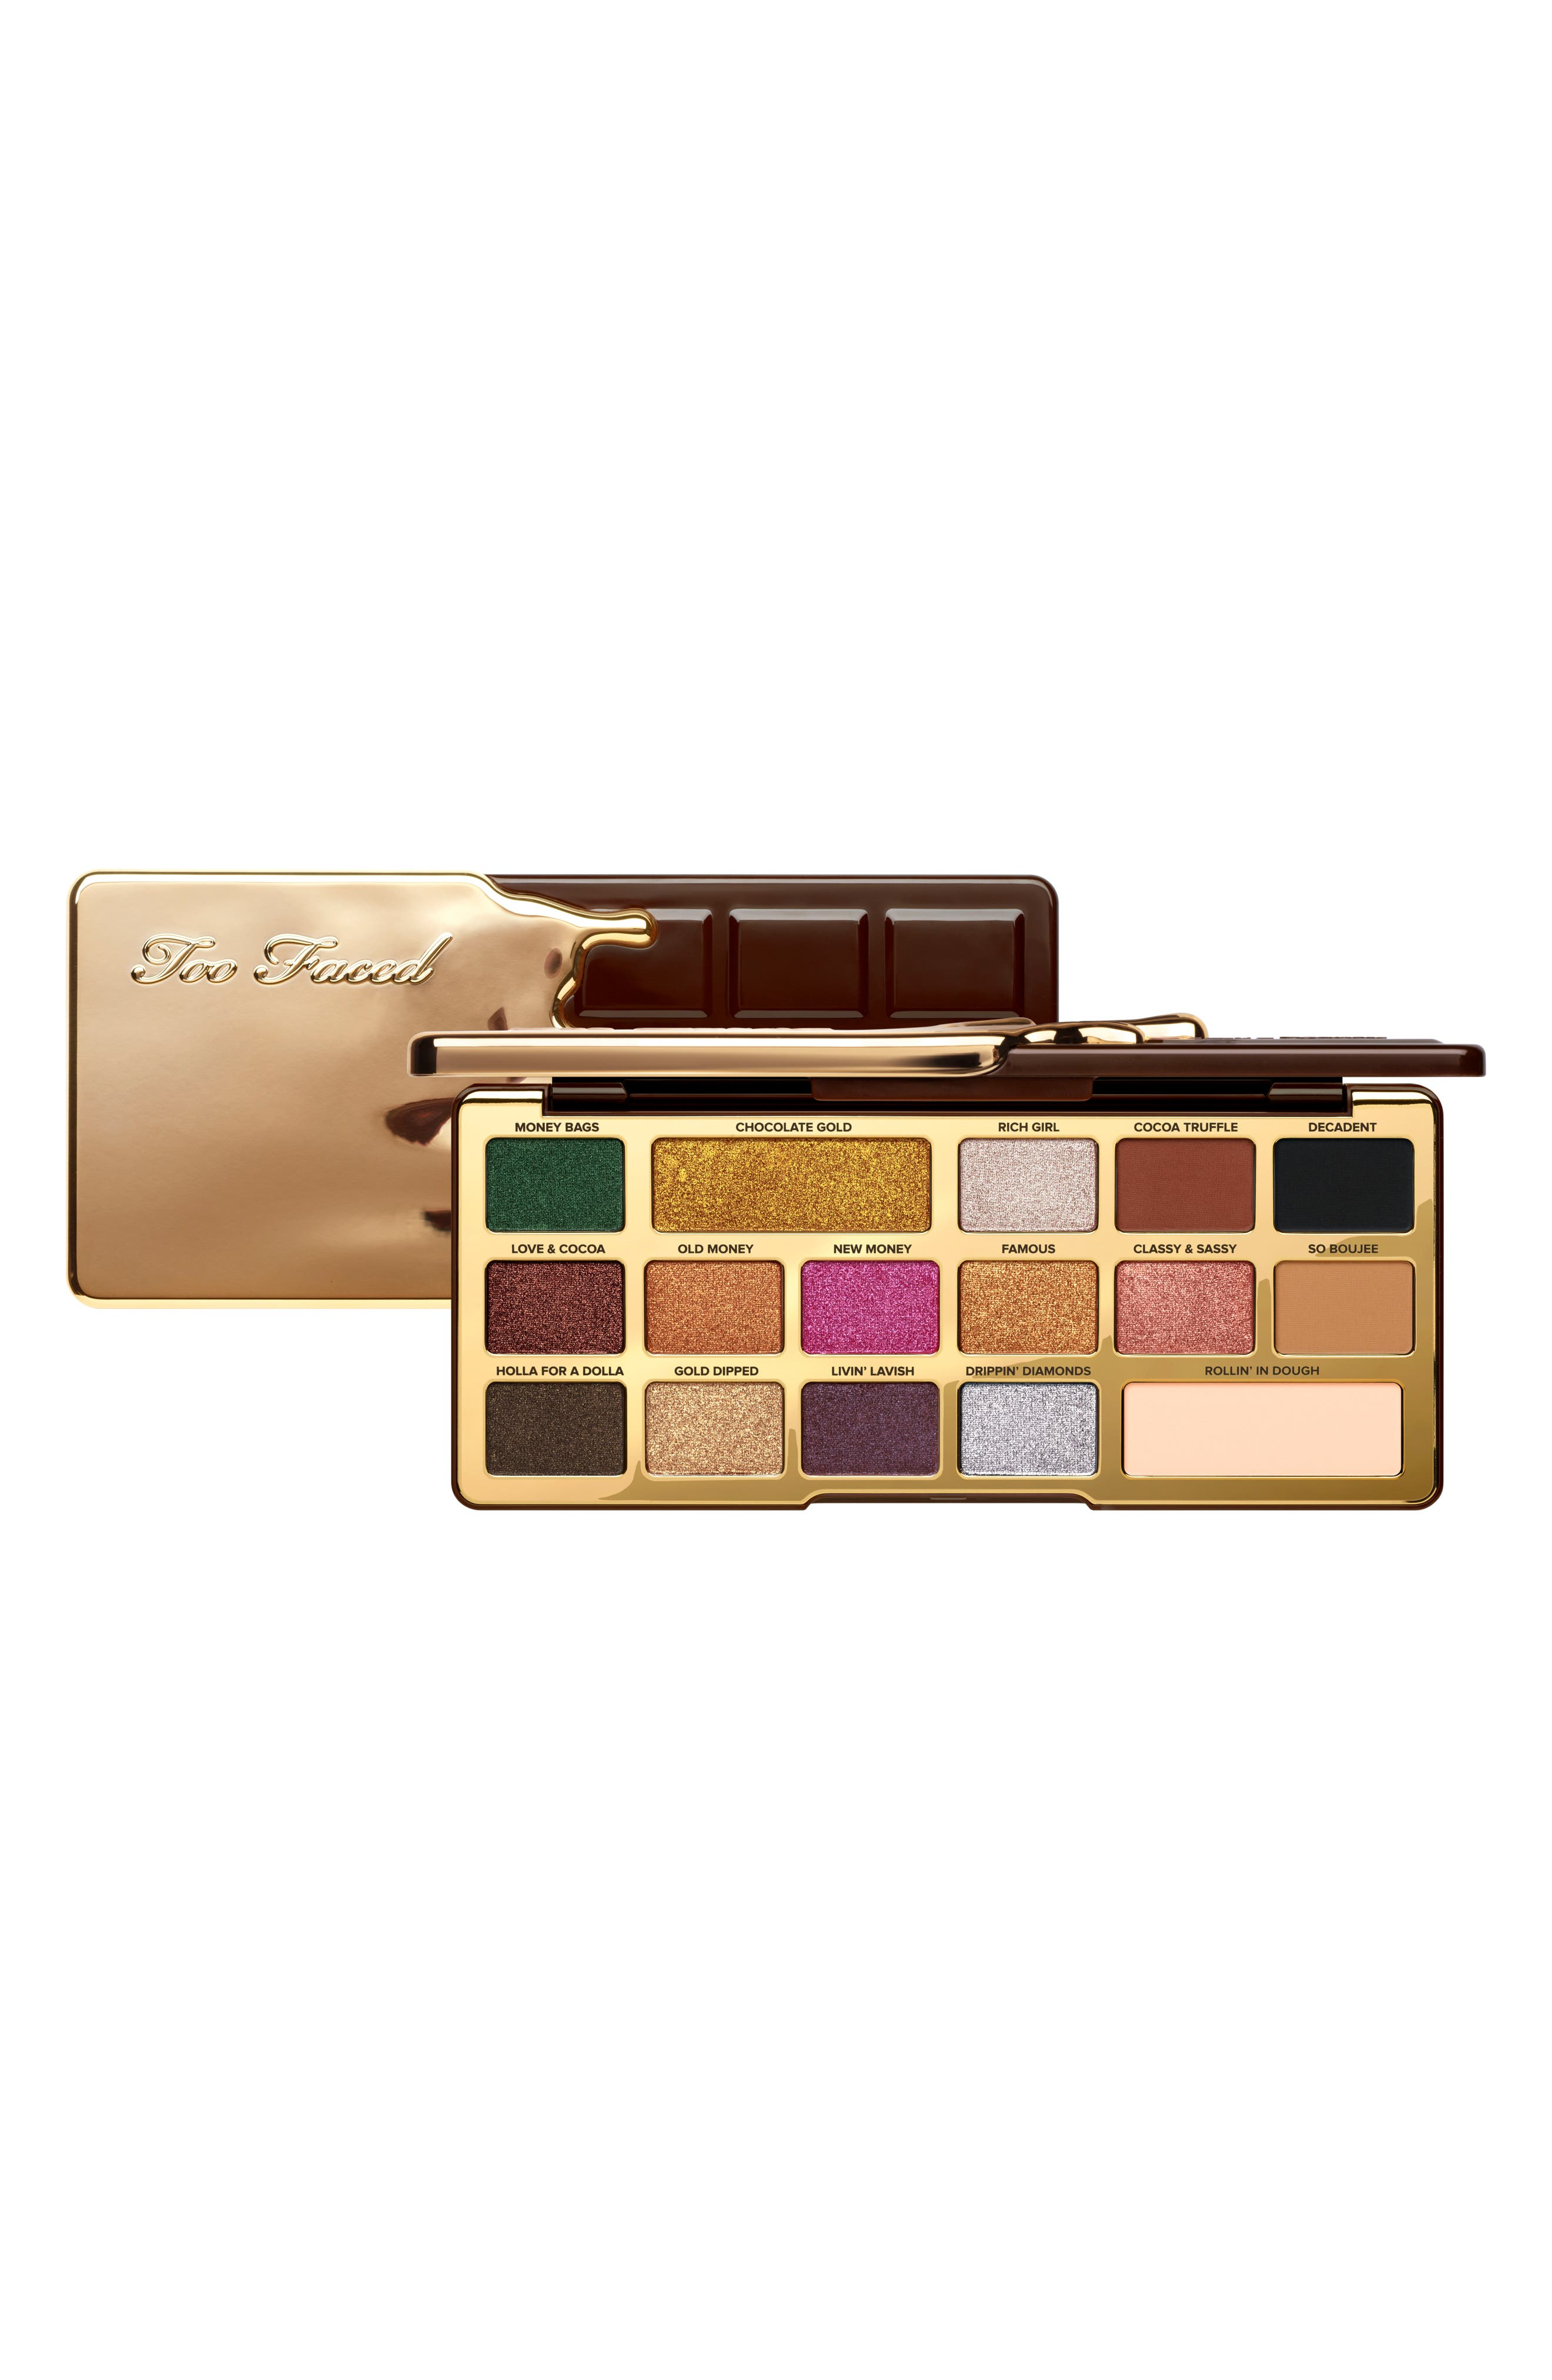 Chocolate Gold Eyeshadow Palette,                             Alternate thumbnail 8, color,                             No Color